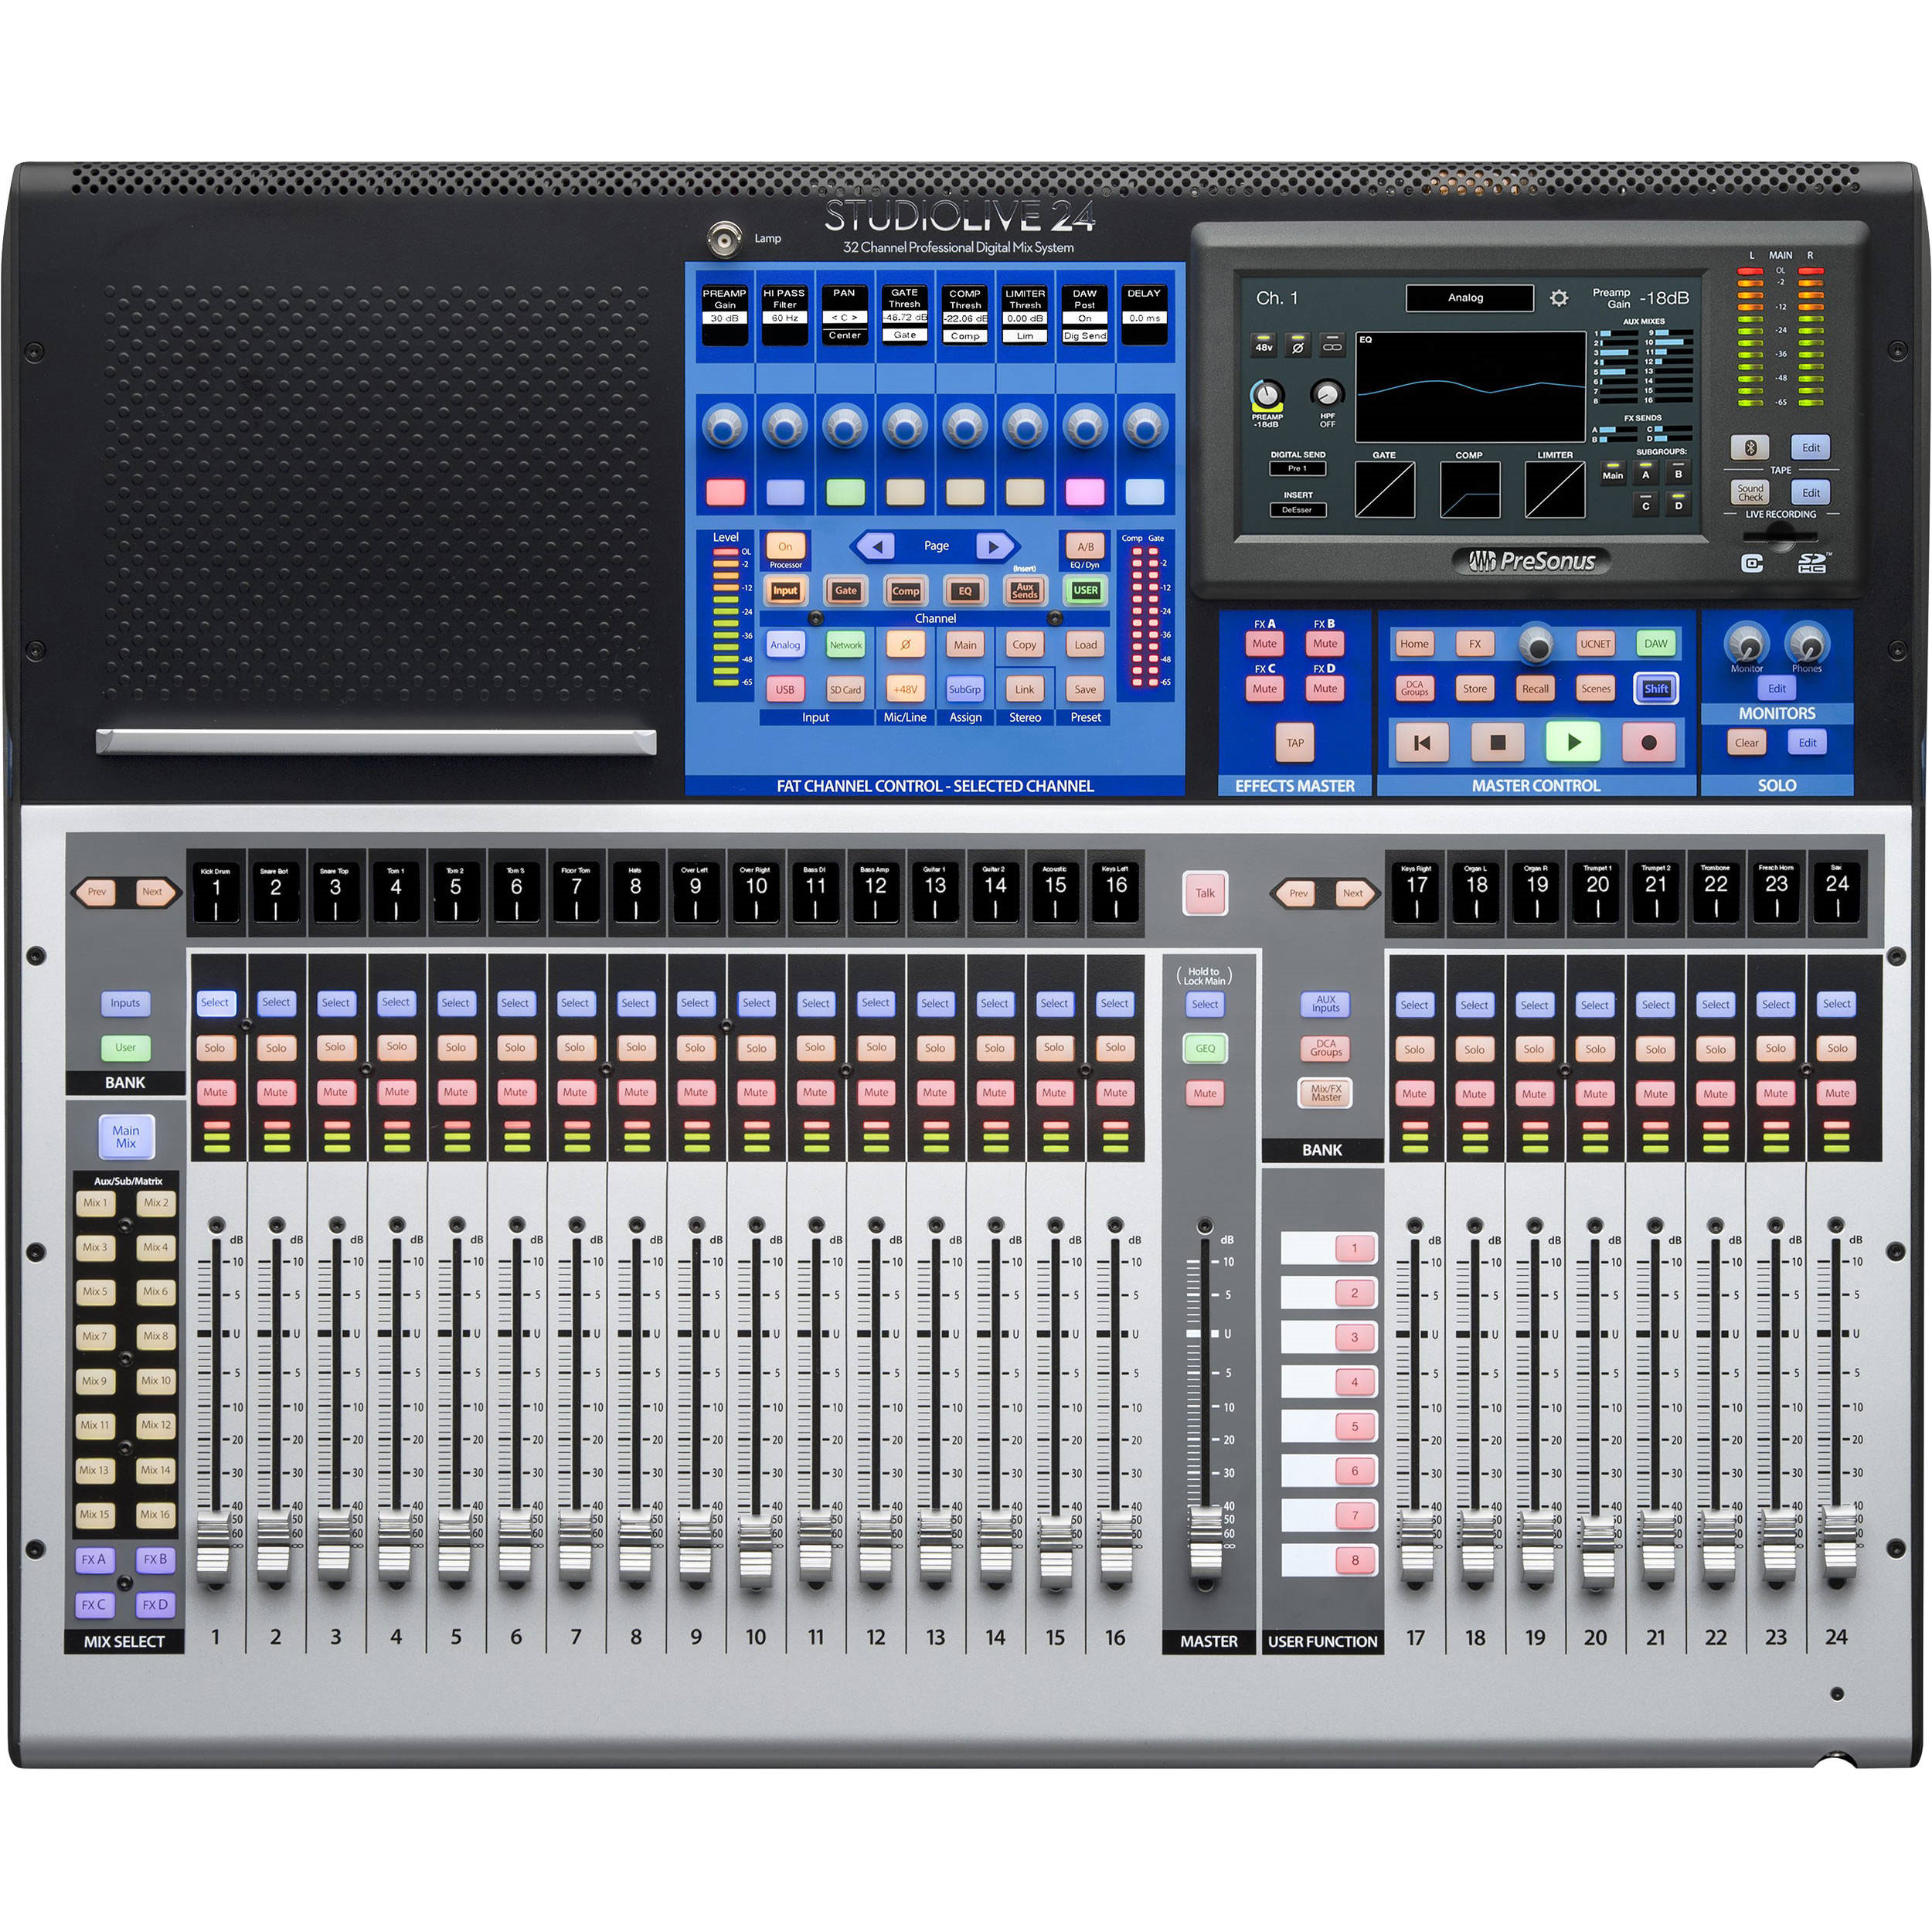 PreSonus 24-Channel Digital Mixer with Touch-Sensitive Moving Faders